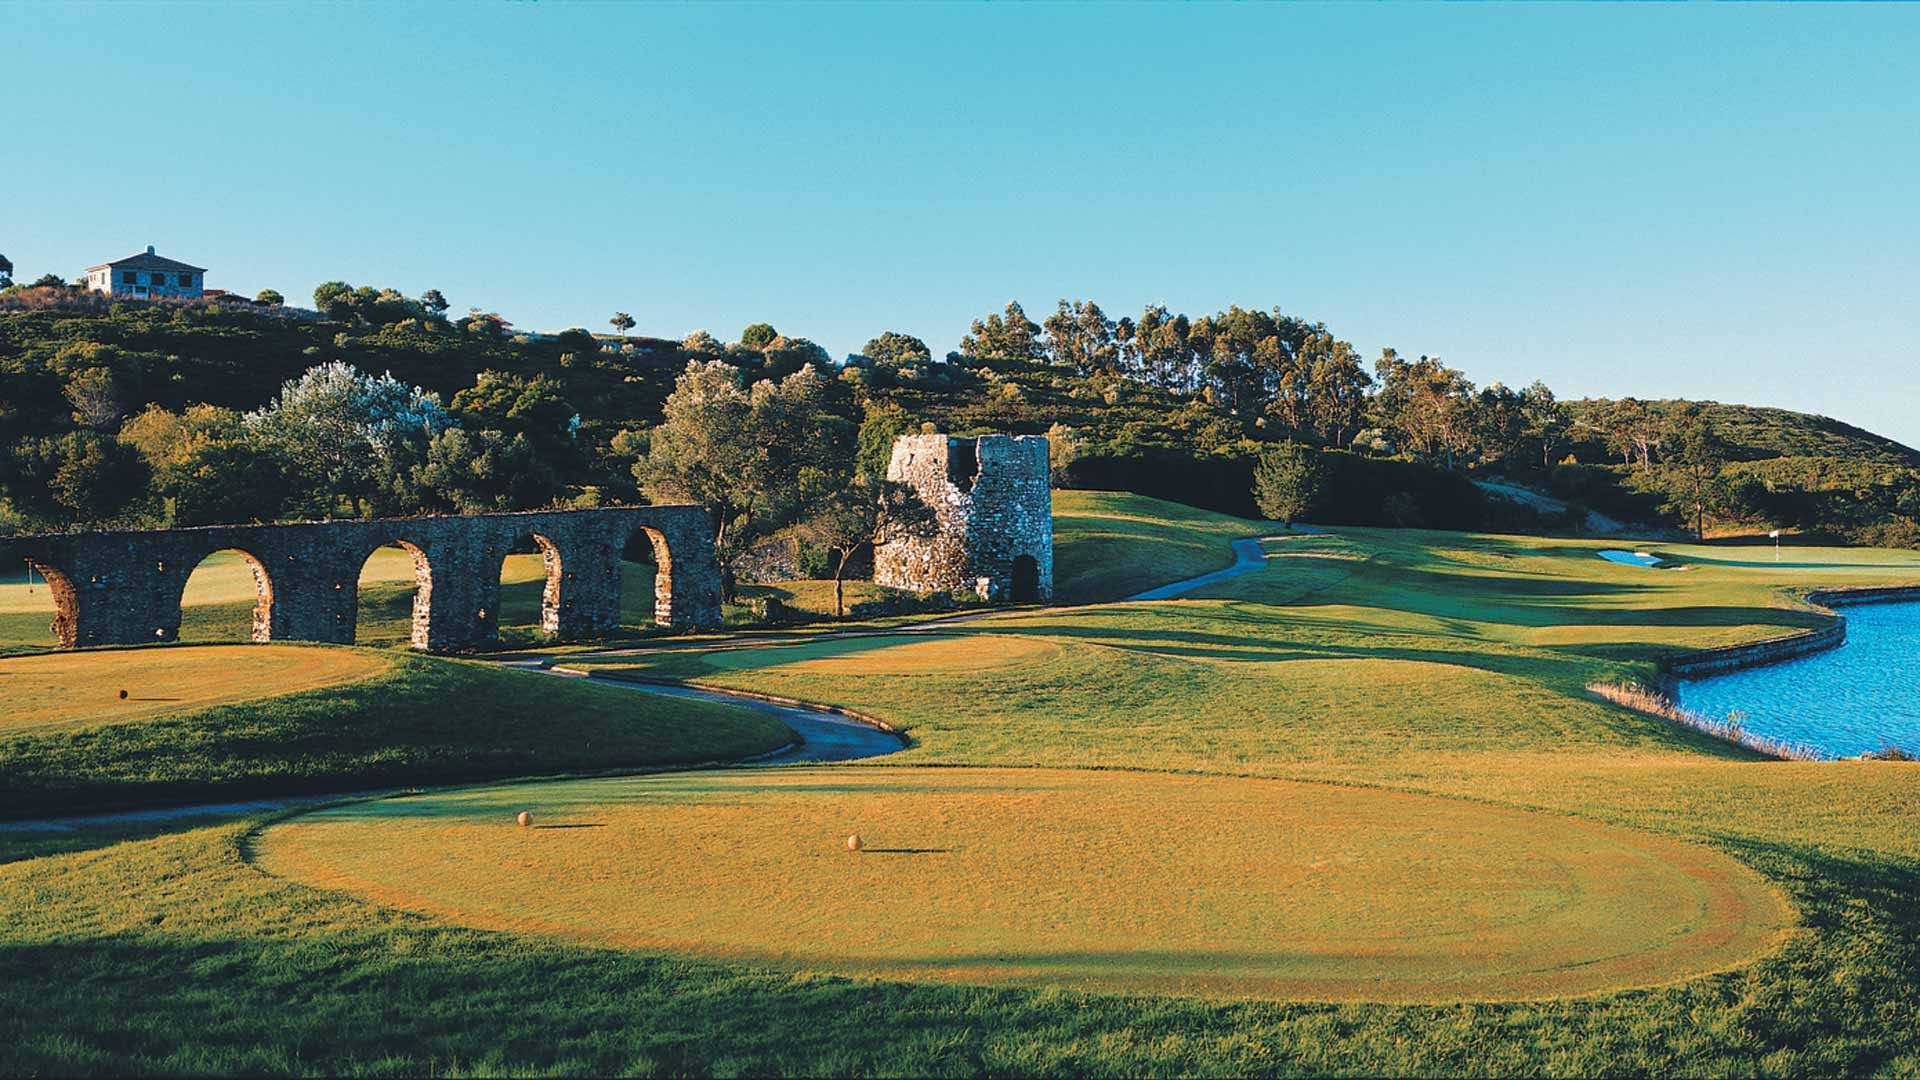 Gastro Golf teams up with Lisbon Tourist Board